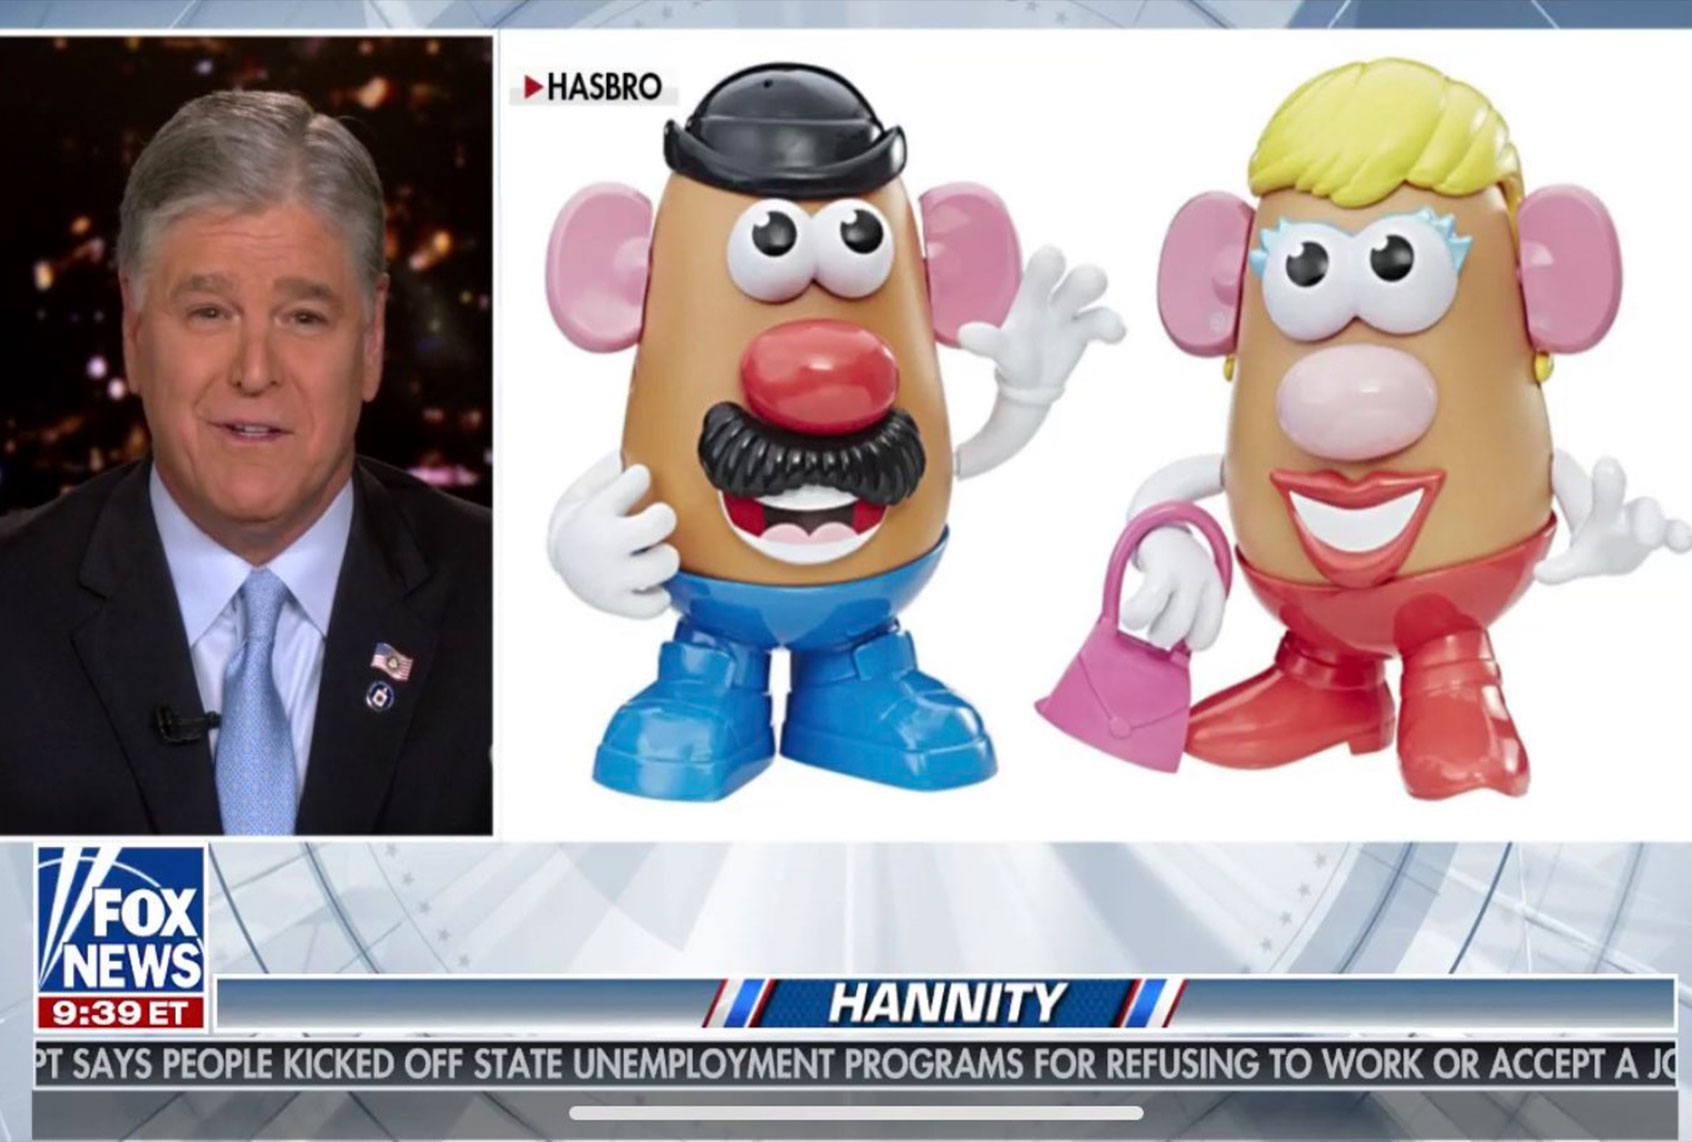 Why are conservatives losing their minds over the Mr. Potato Head rebrand? - Salon